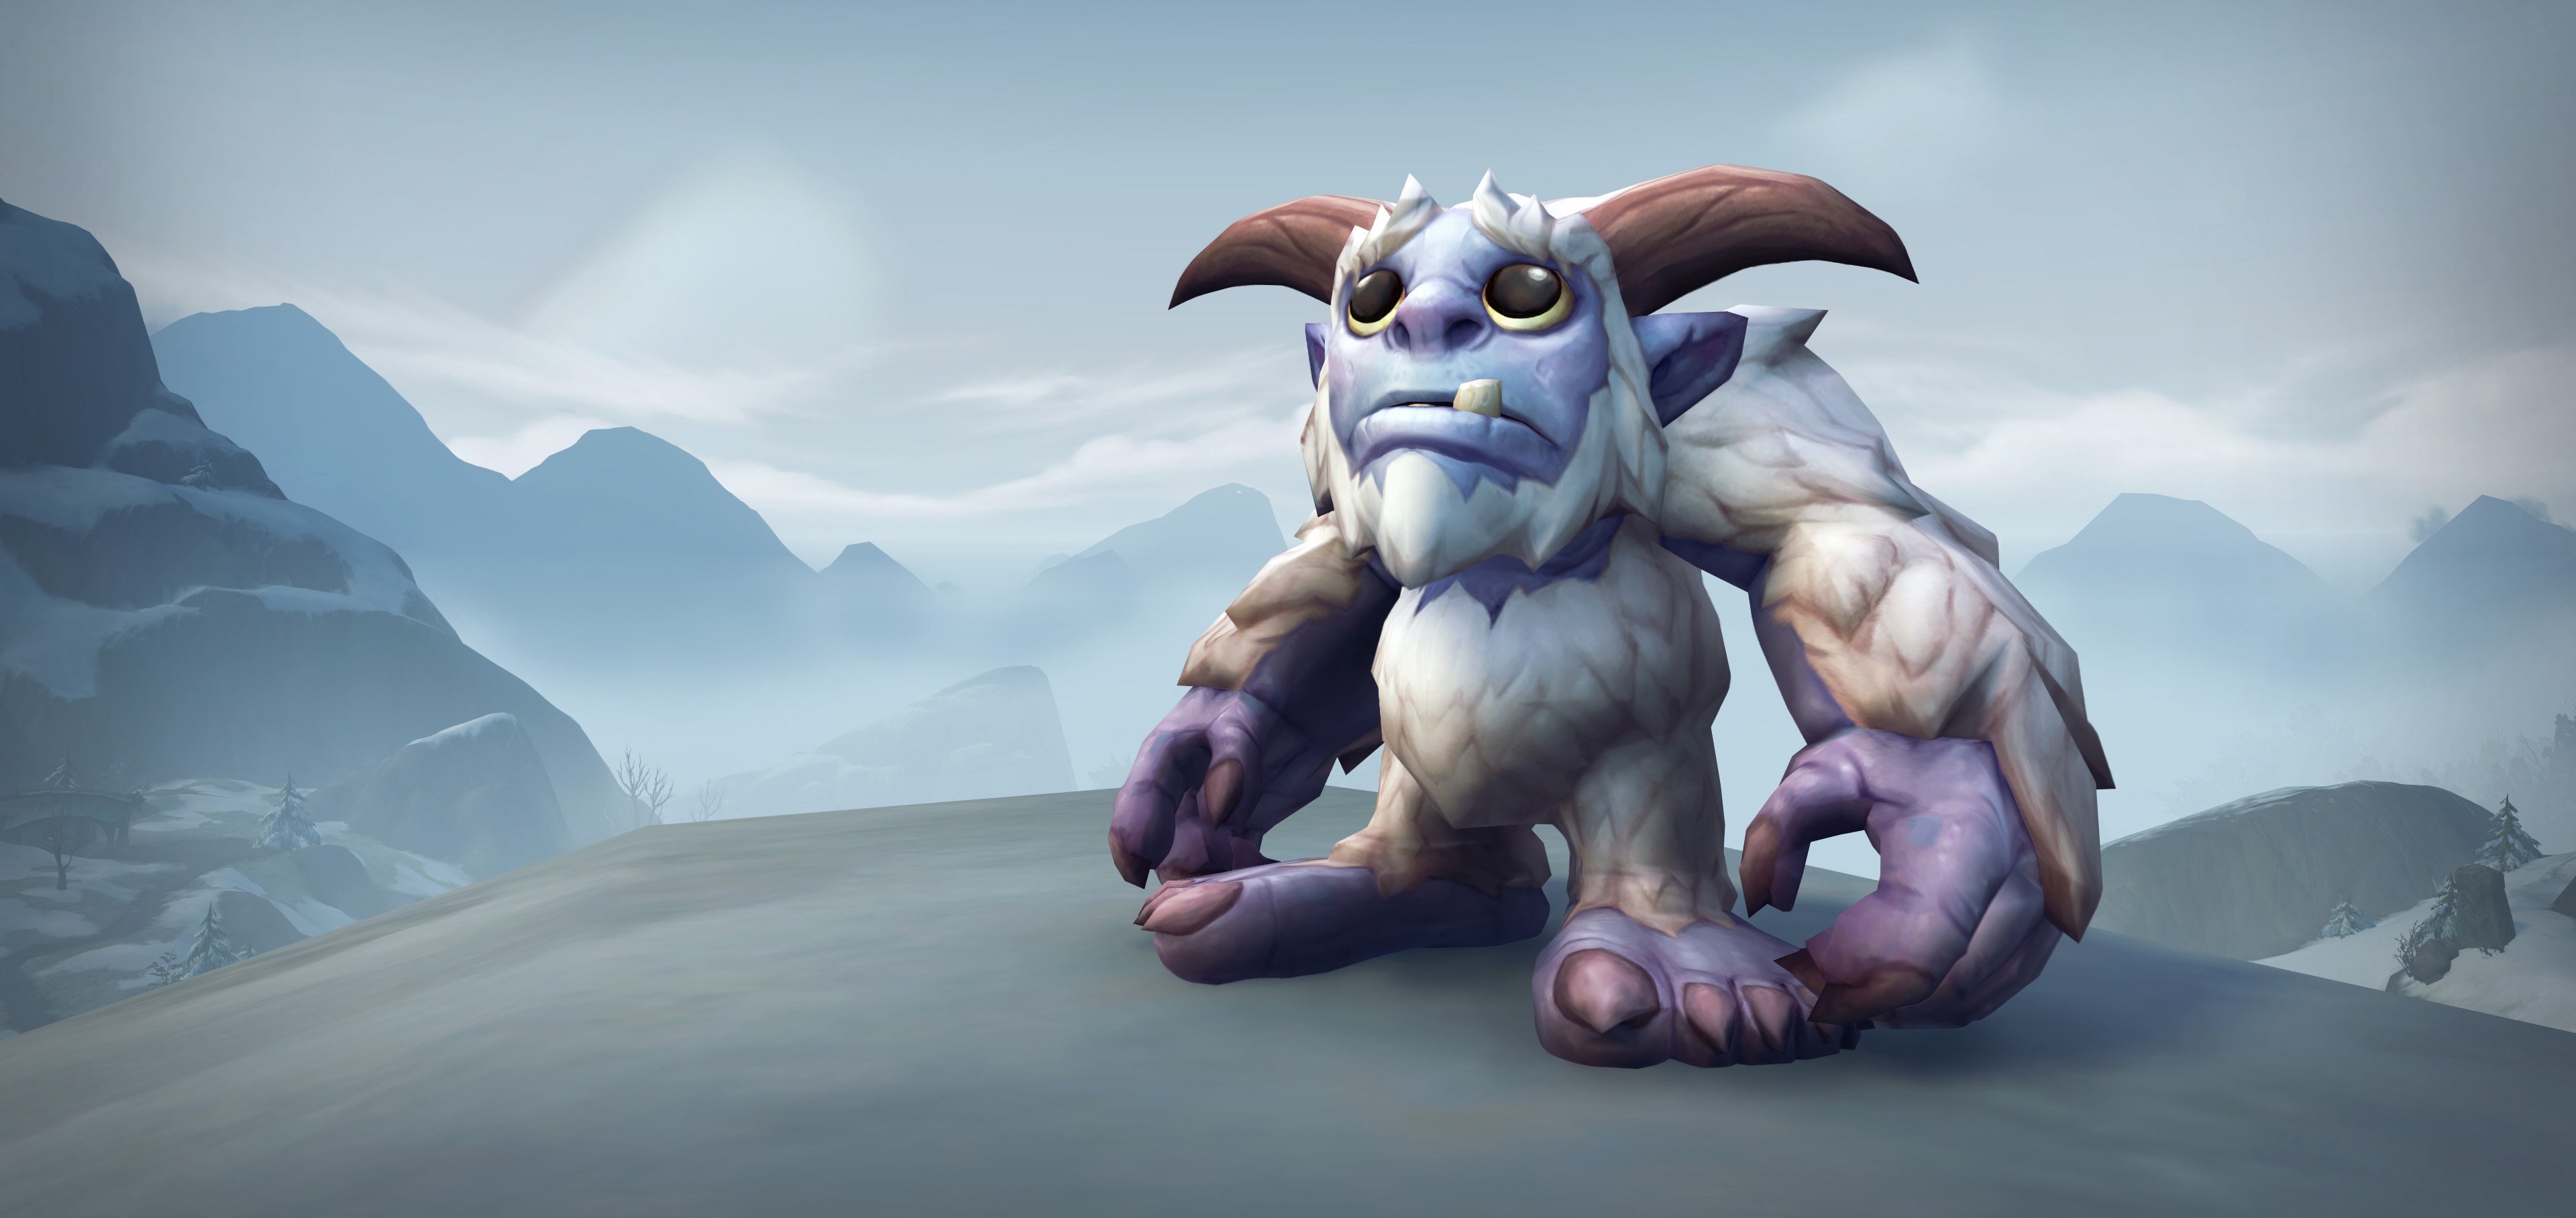 You can adopt the cute little Whomper in World of Warcraft to support charity screenshot